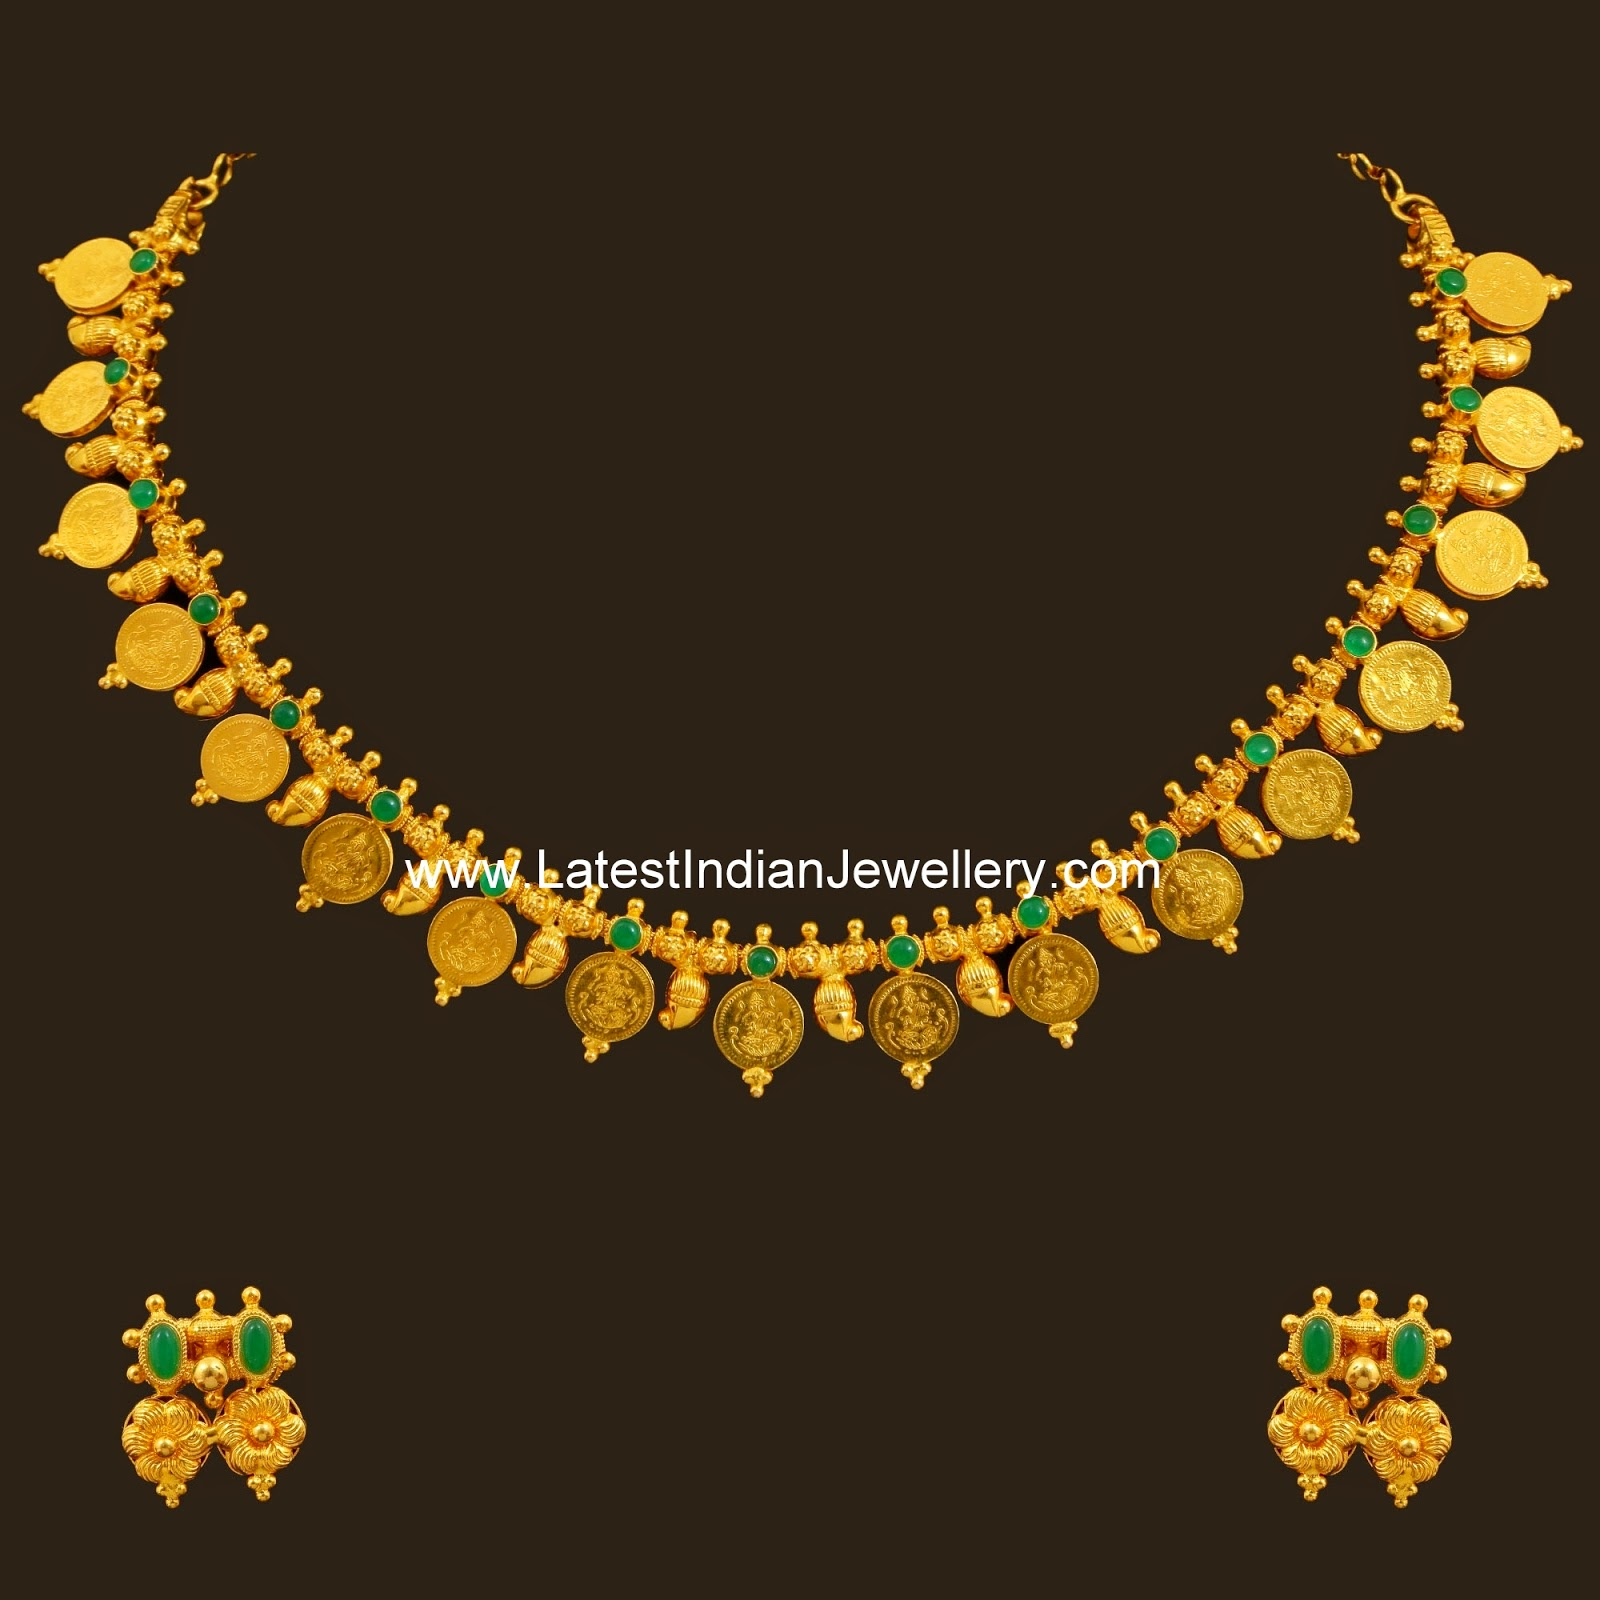 Latest Indian Jewellery Designs 2015: Light Weight Reversible Kasu Necklace